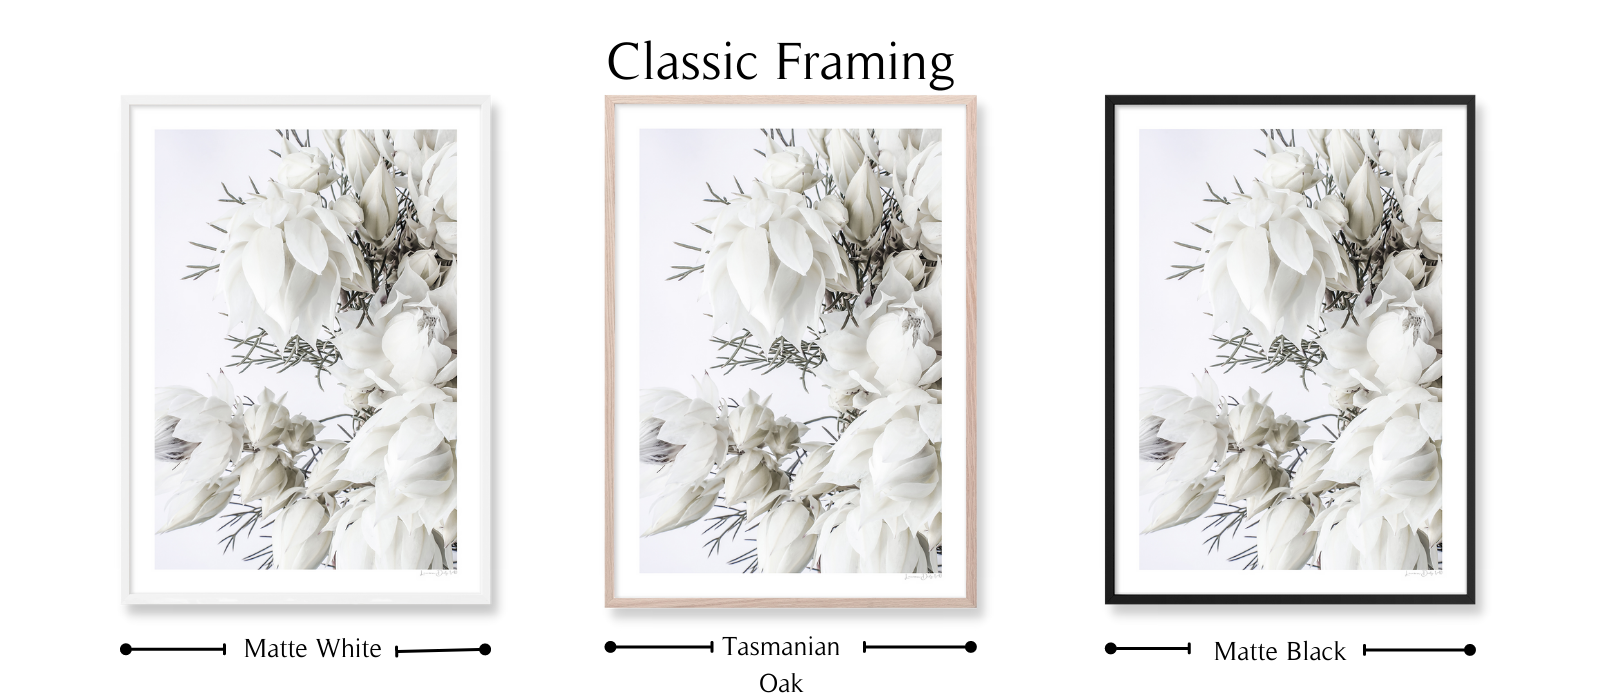 Blushing #1 By Lauren Daly | Classic Framing Style | LD Art House